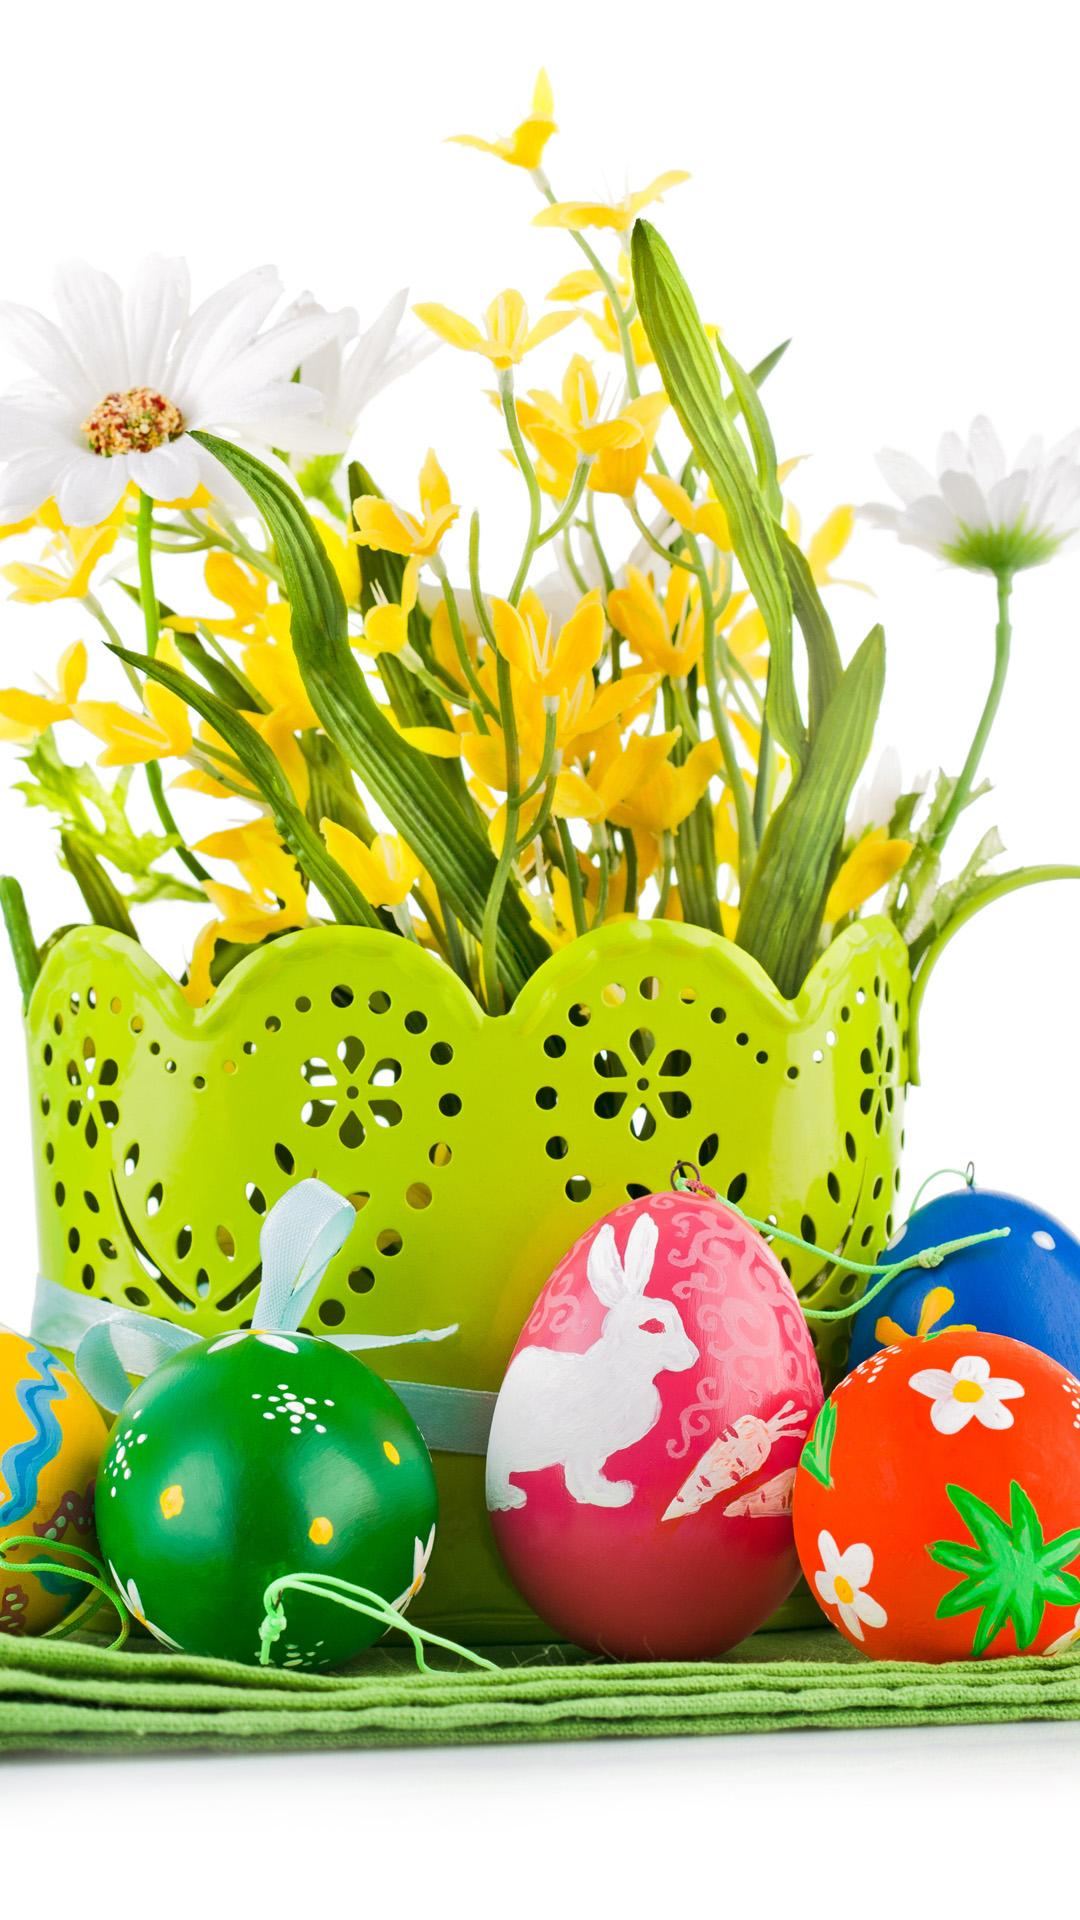 Easter iPhone 6 Wallpapers - Wallpaper Cave